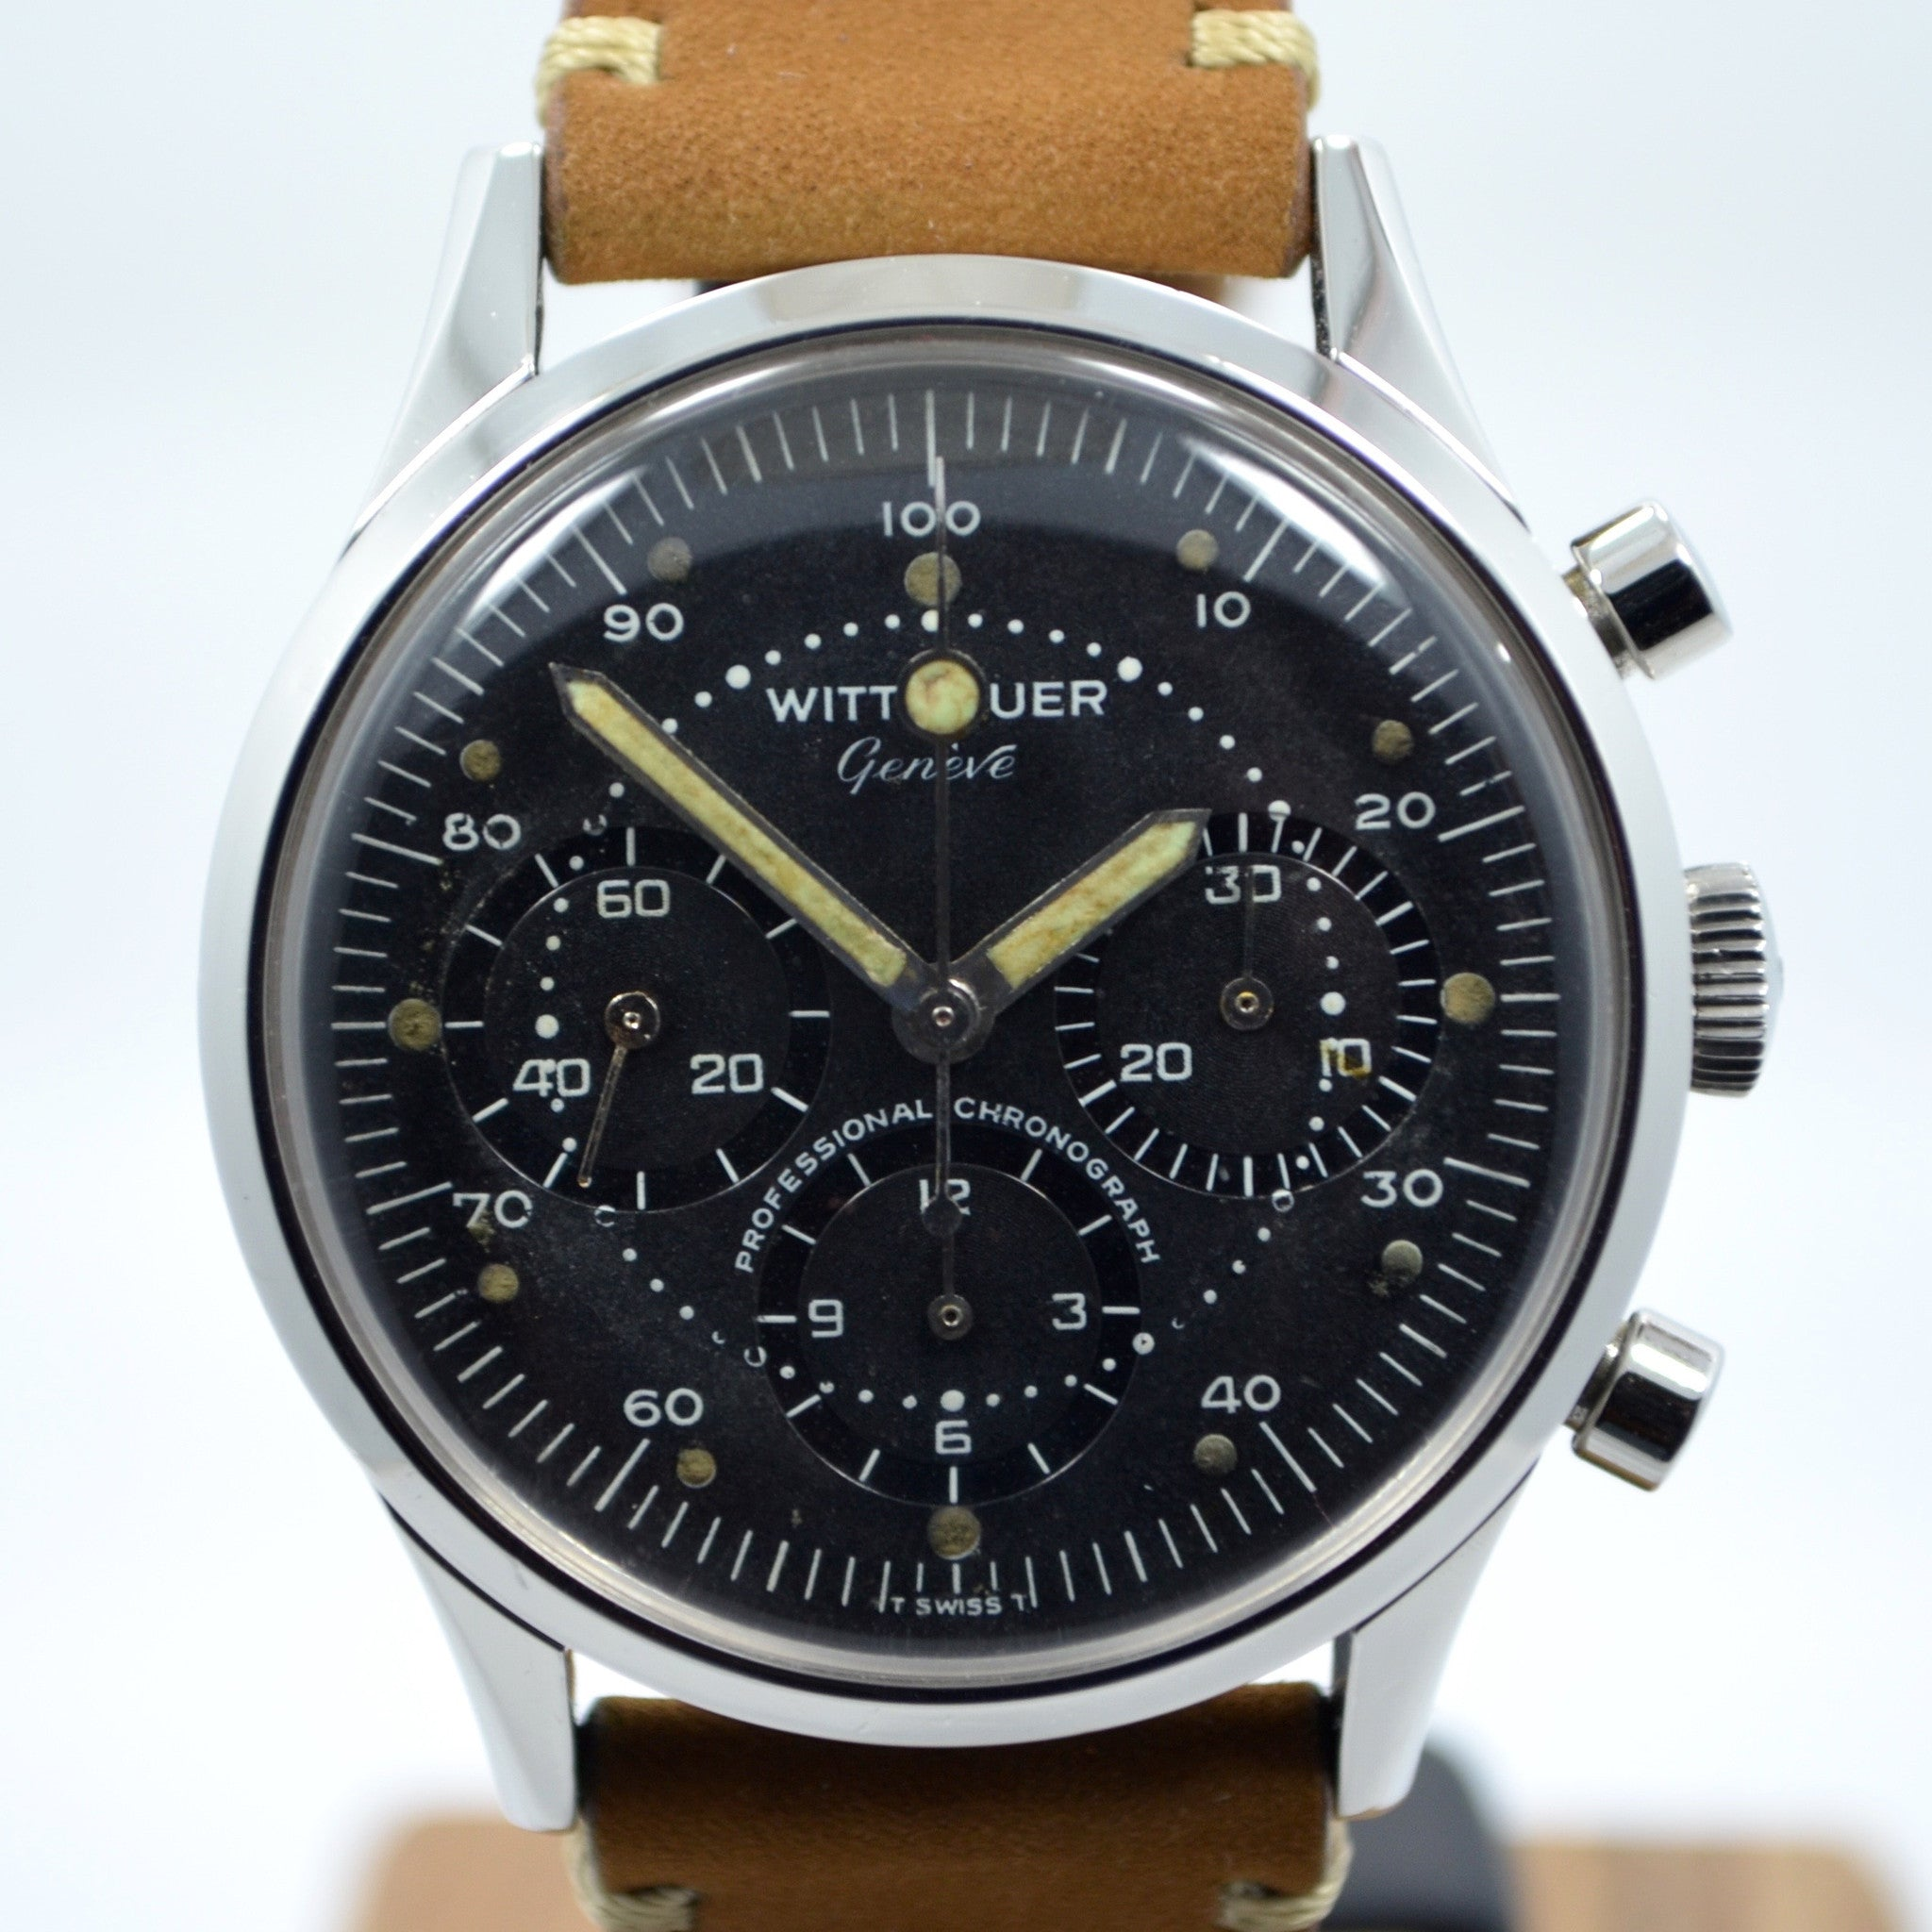 Vintage Wittnauer Professional Chronograph Steel Valjoux 72 Manual Wristwatch - Hashtag Watch Company